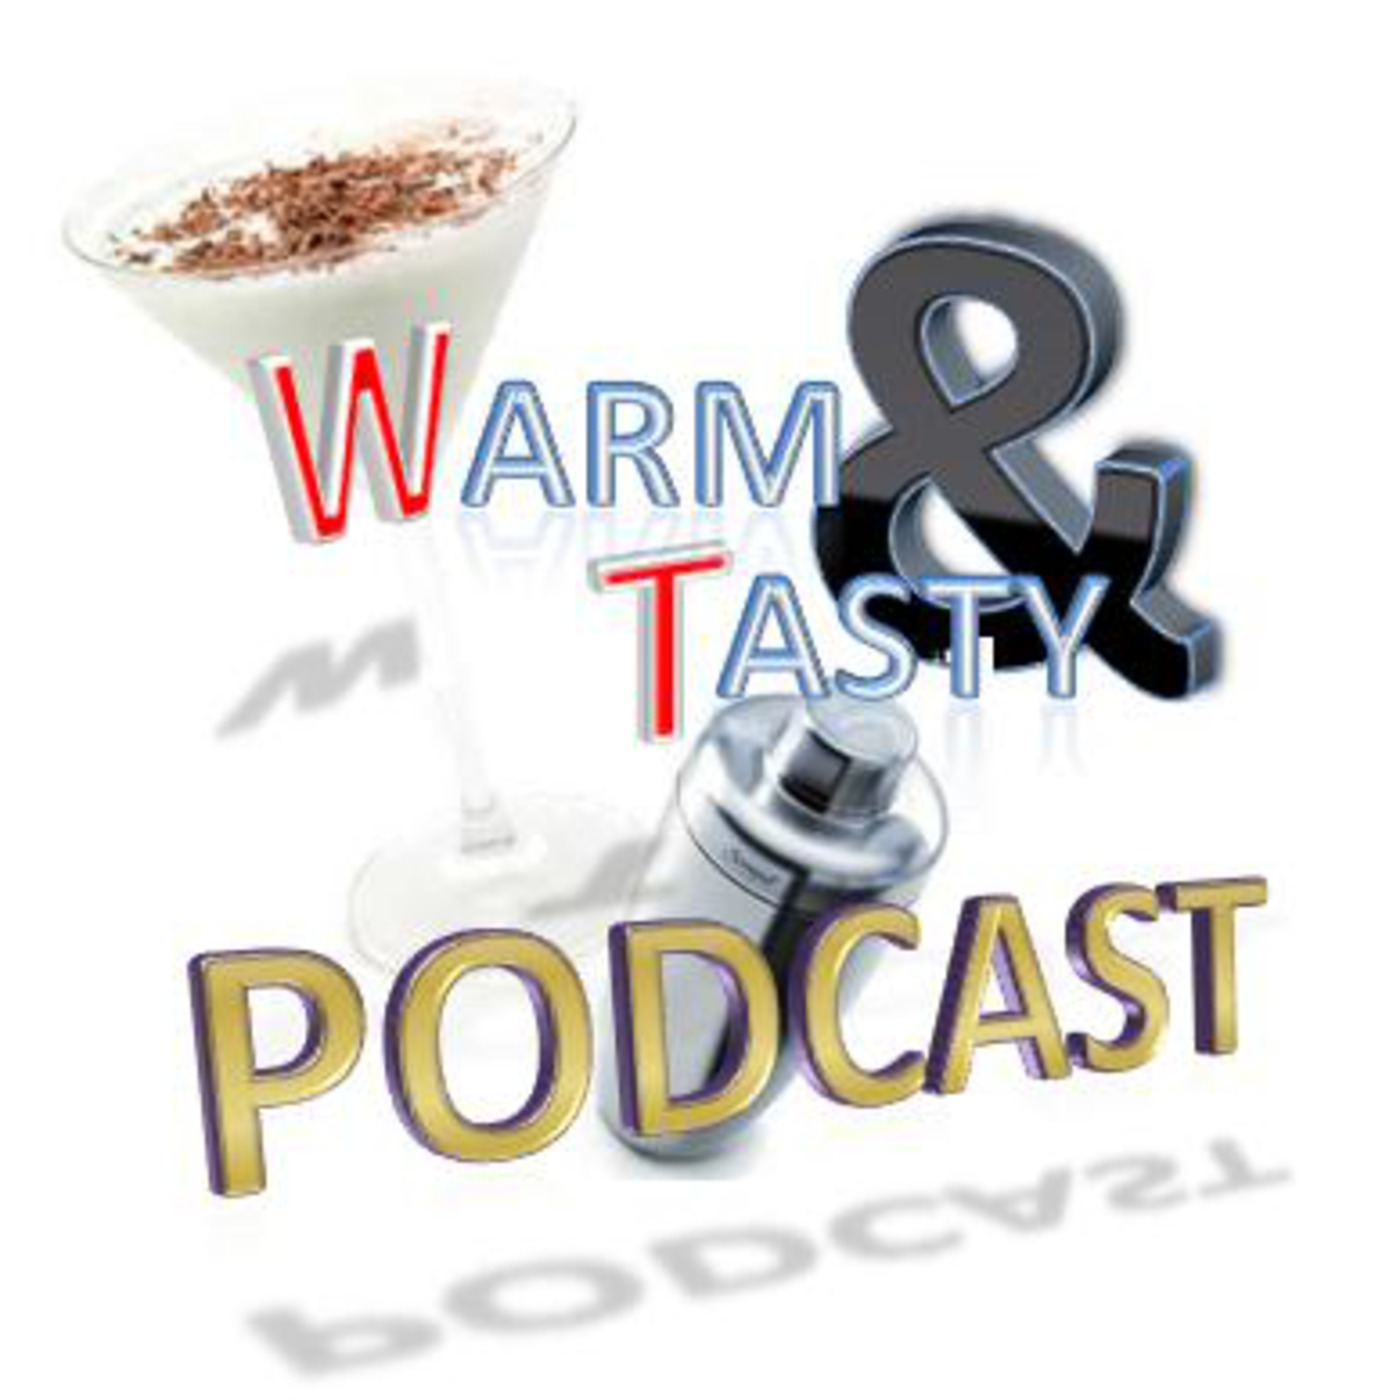 The Warm & Tasty Podcast